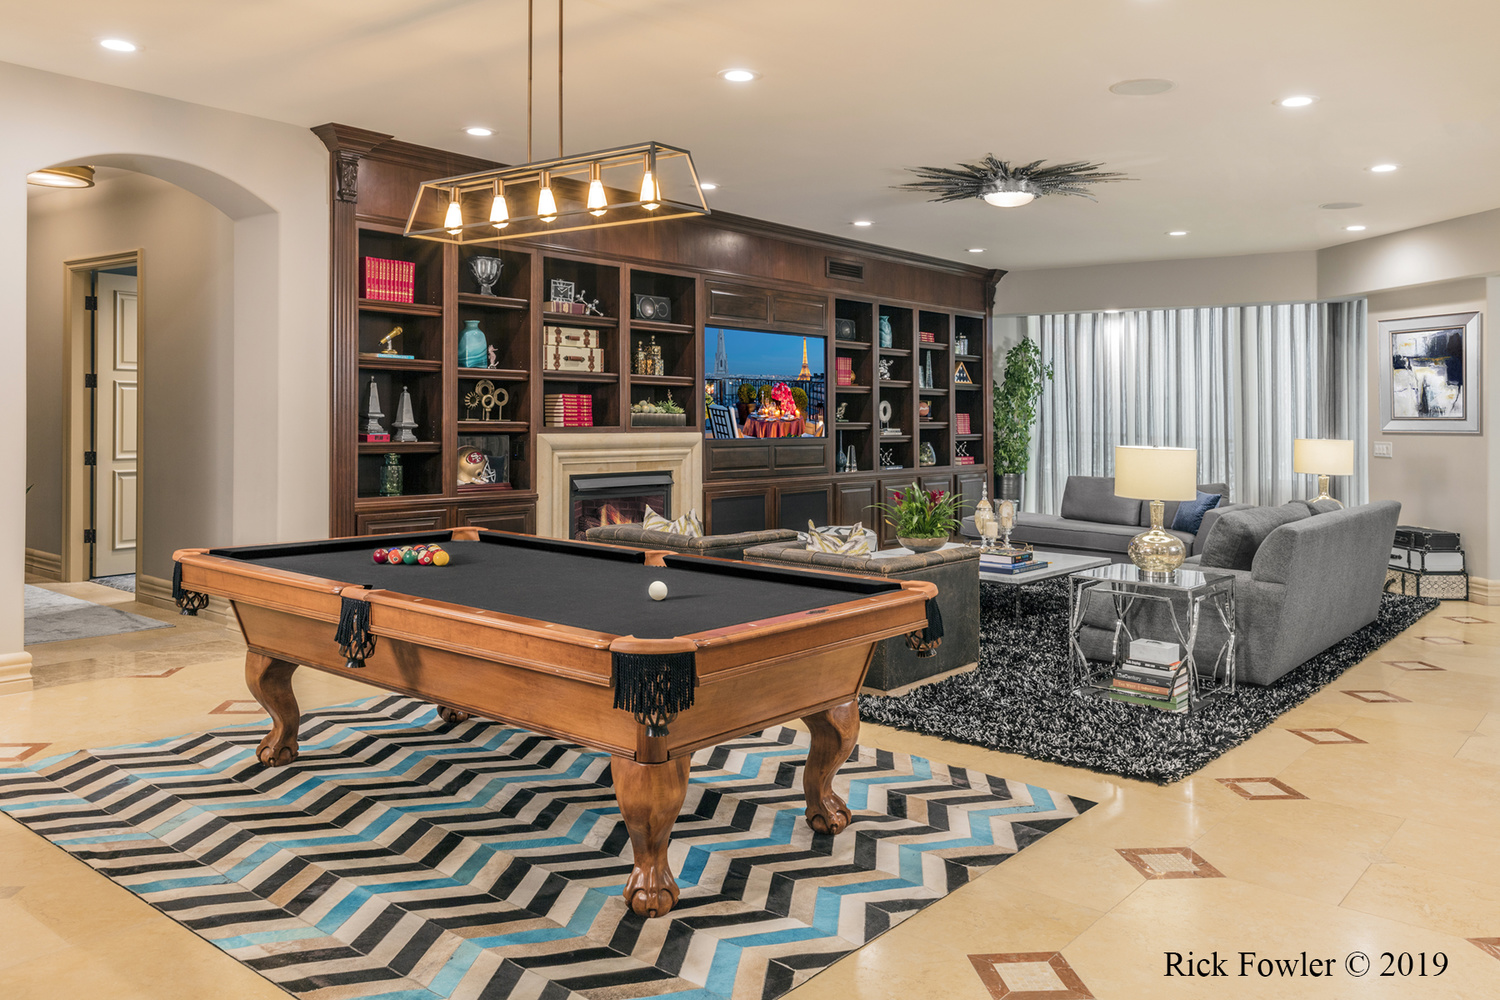 One Queens Ridge Place Private Residence Las Vegas, NV by Rick Fowler